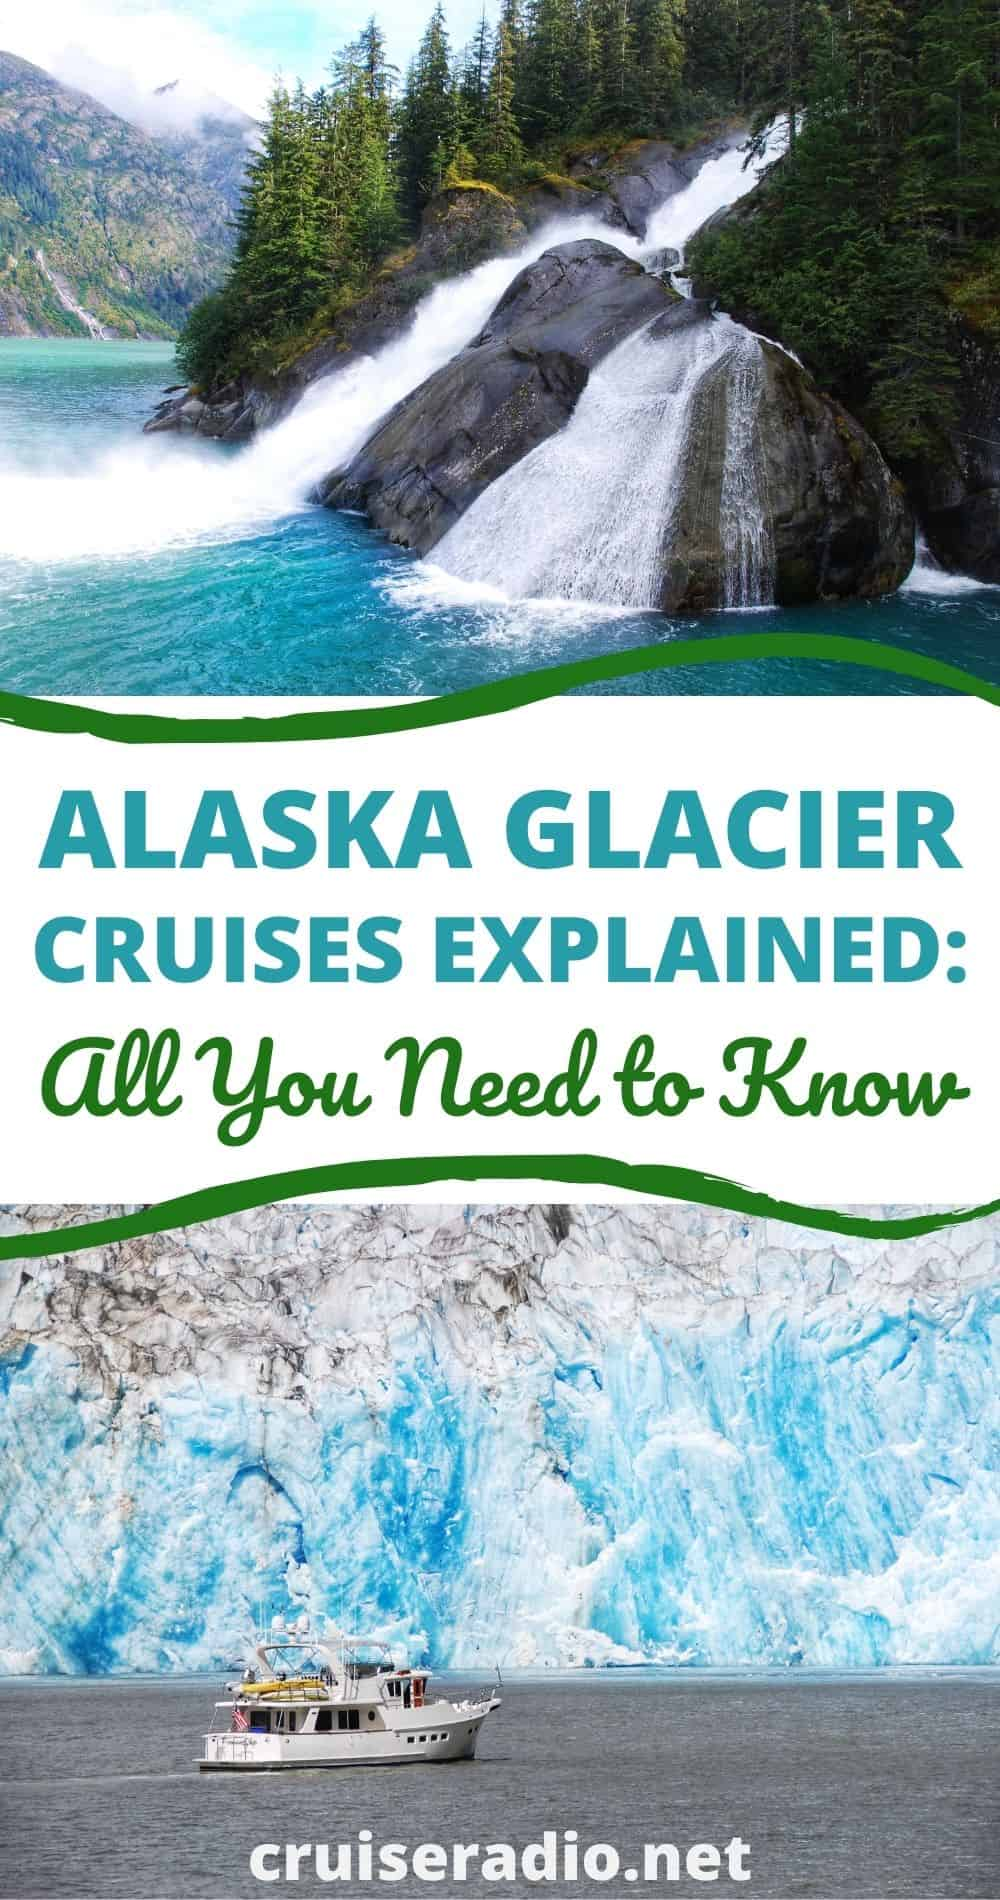 alaska glacier cruises explained: all you need to know